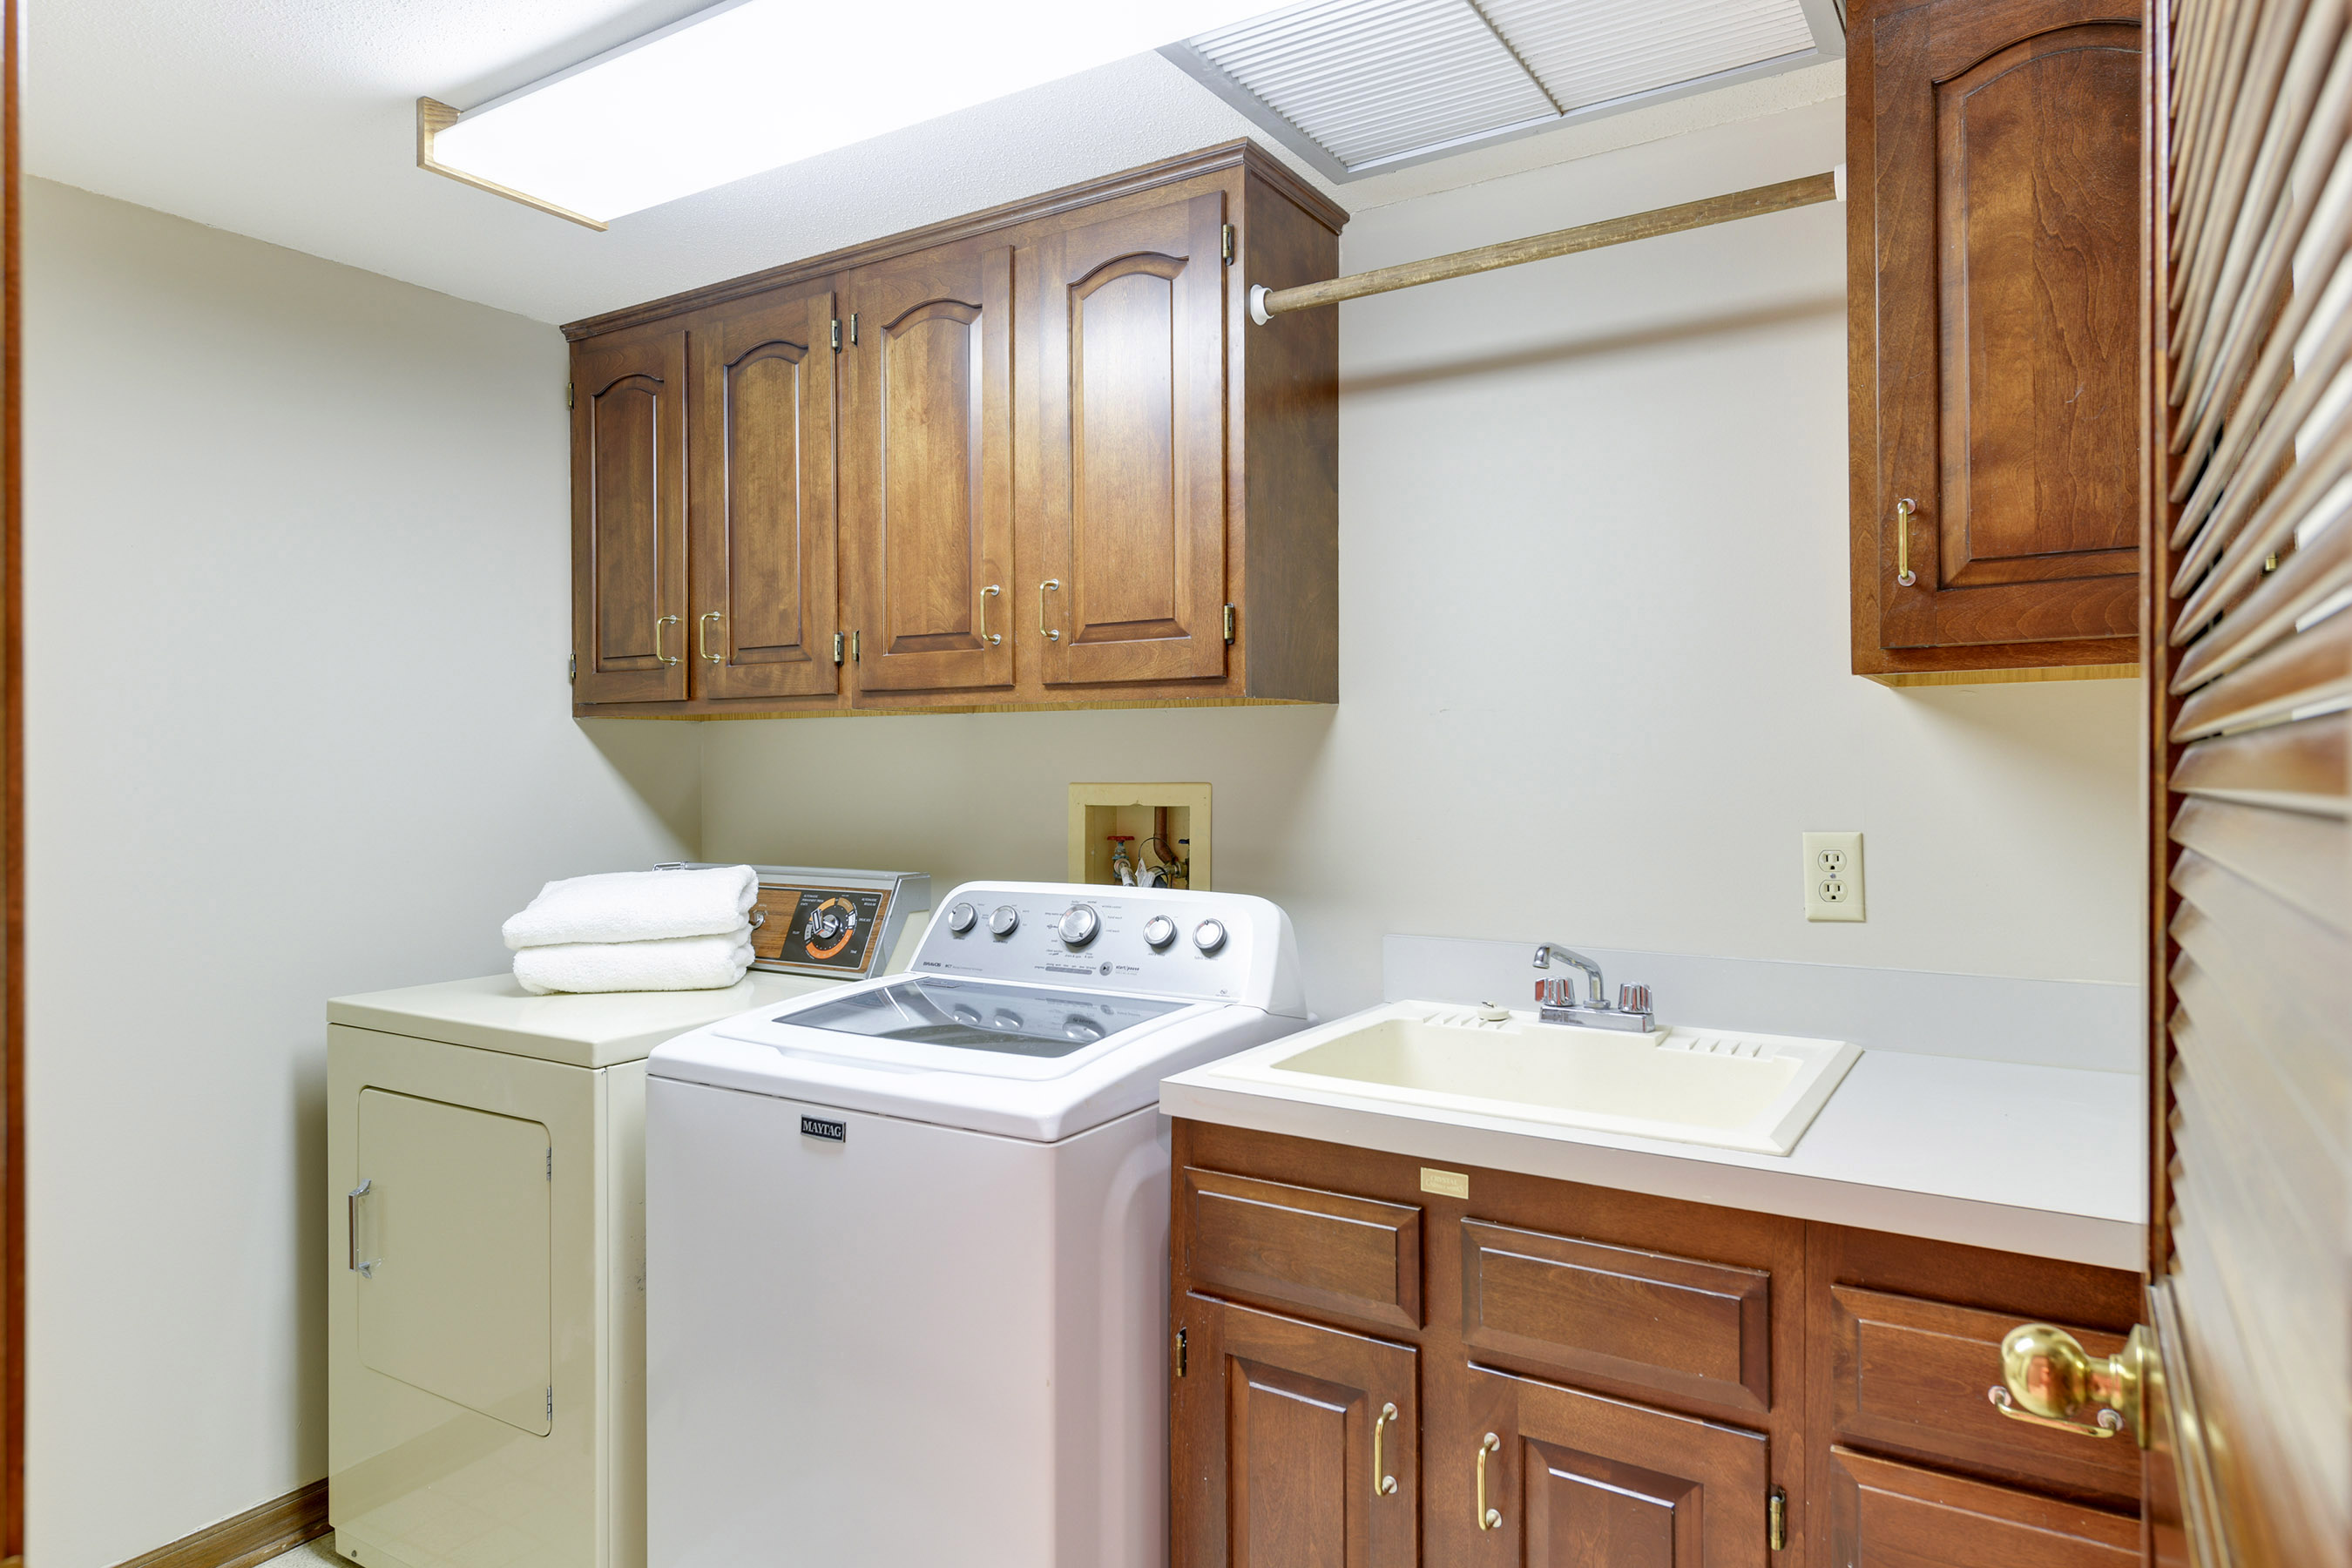 There is a main floor laundry with a wash tub and several built-in cabinets